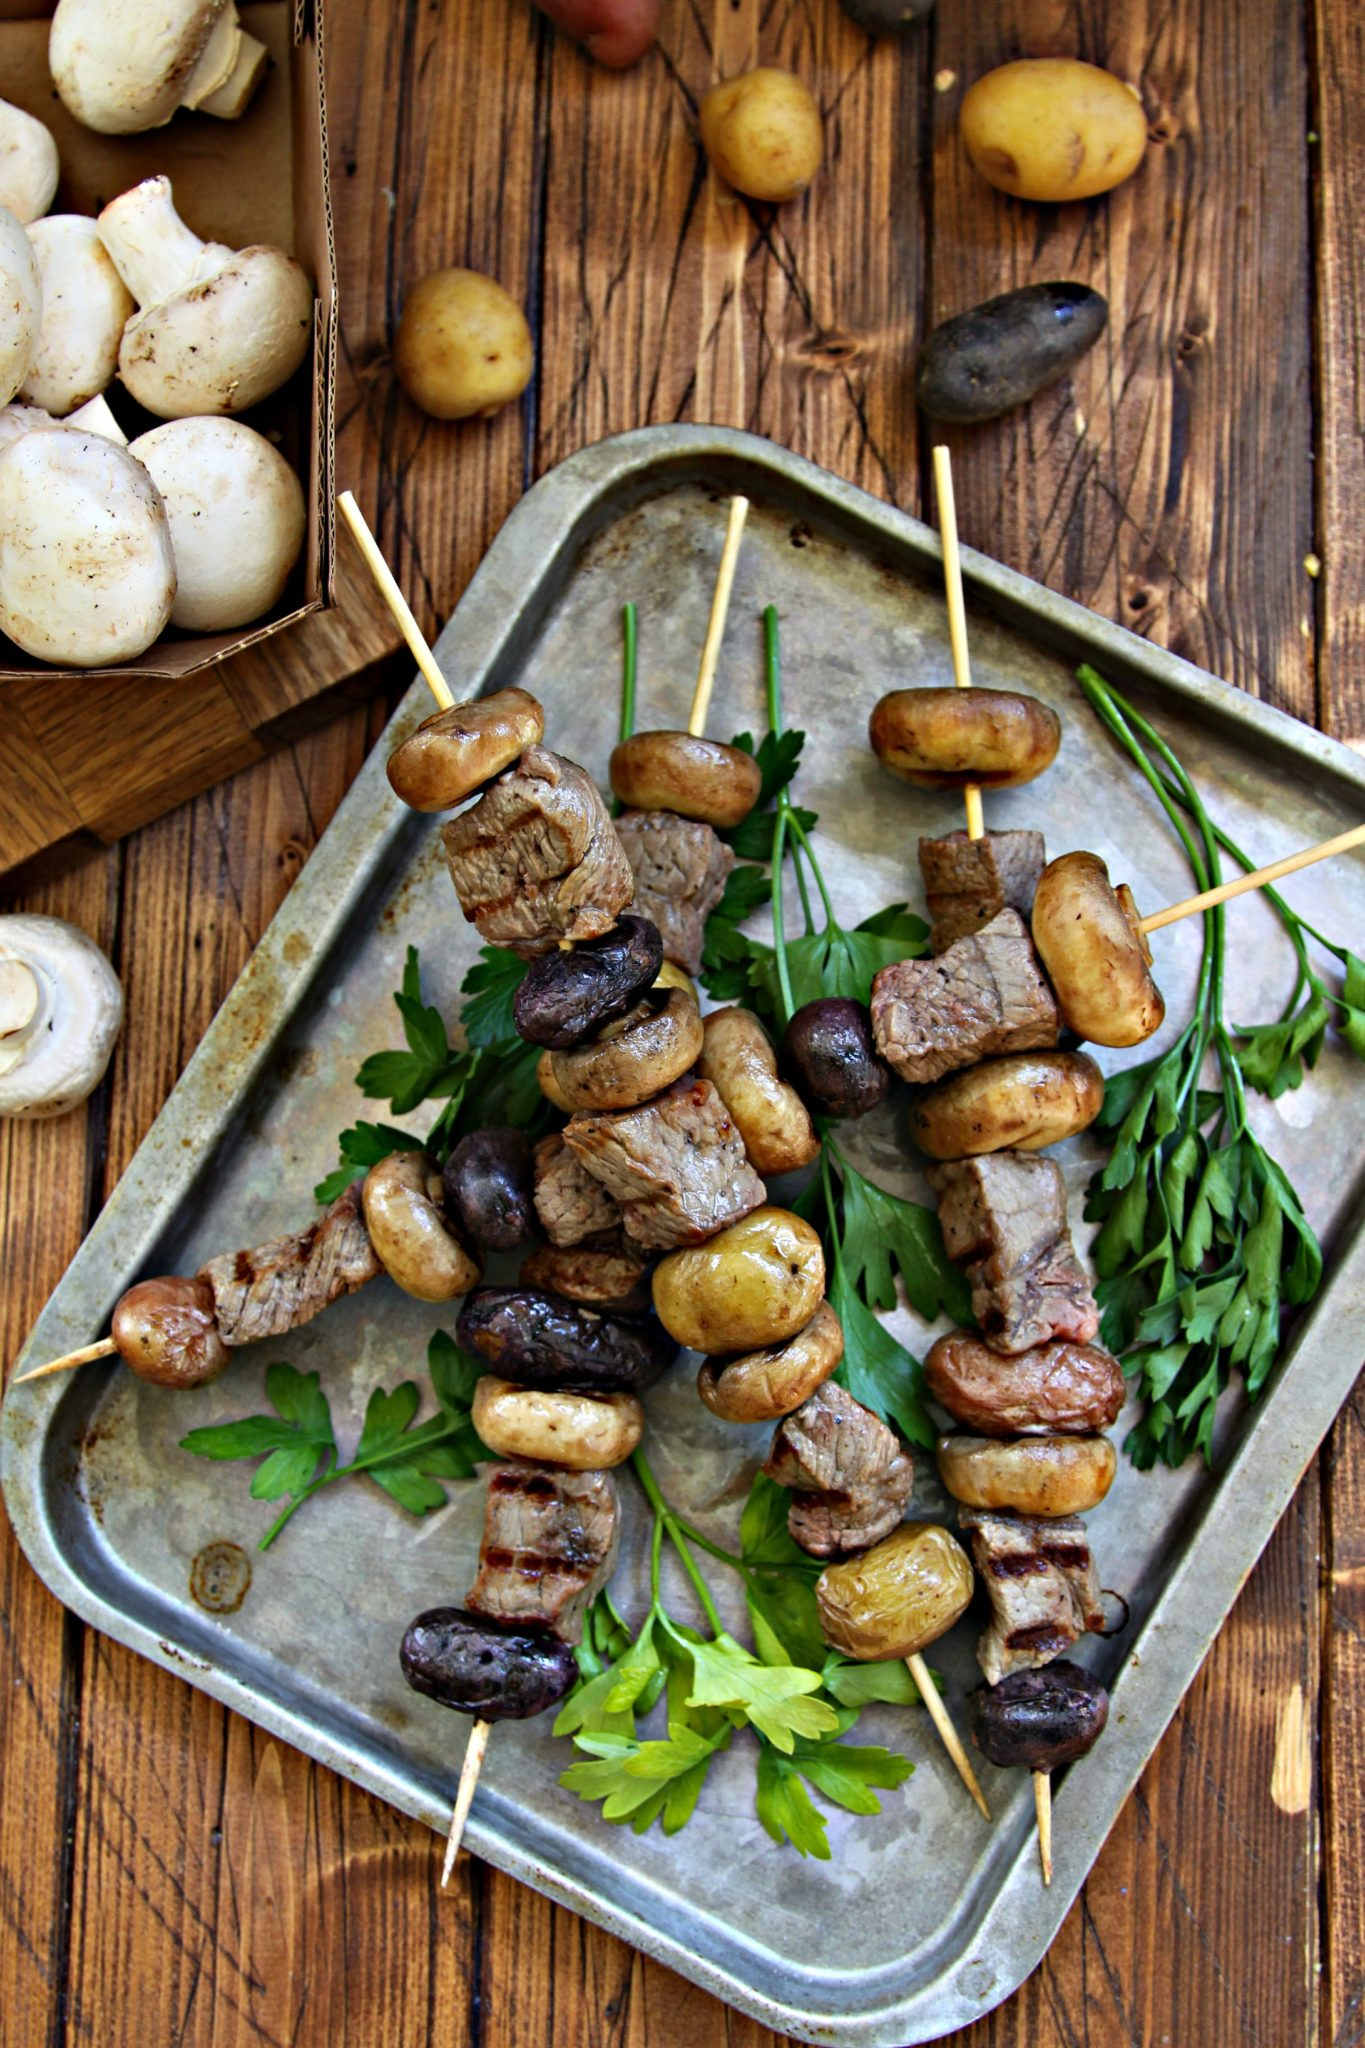 Steak Potato and Mushroom Kebabs #steak #beef #kebabs #kabobs #mushrooms